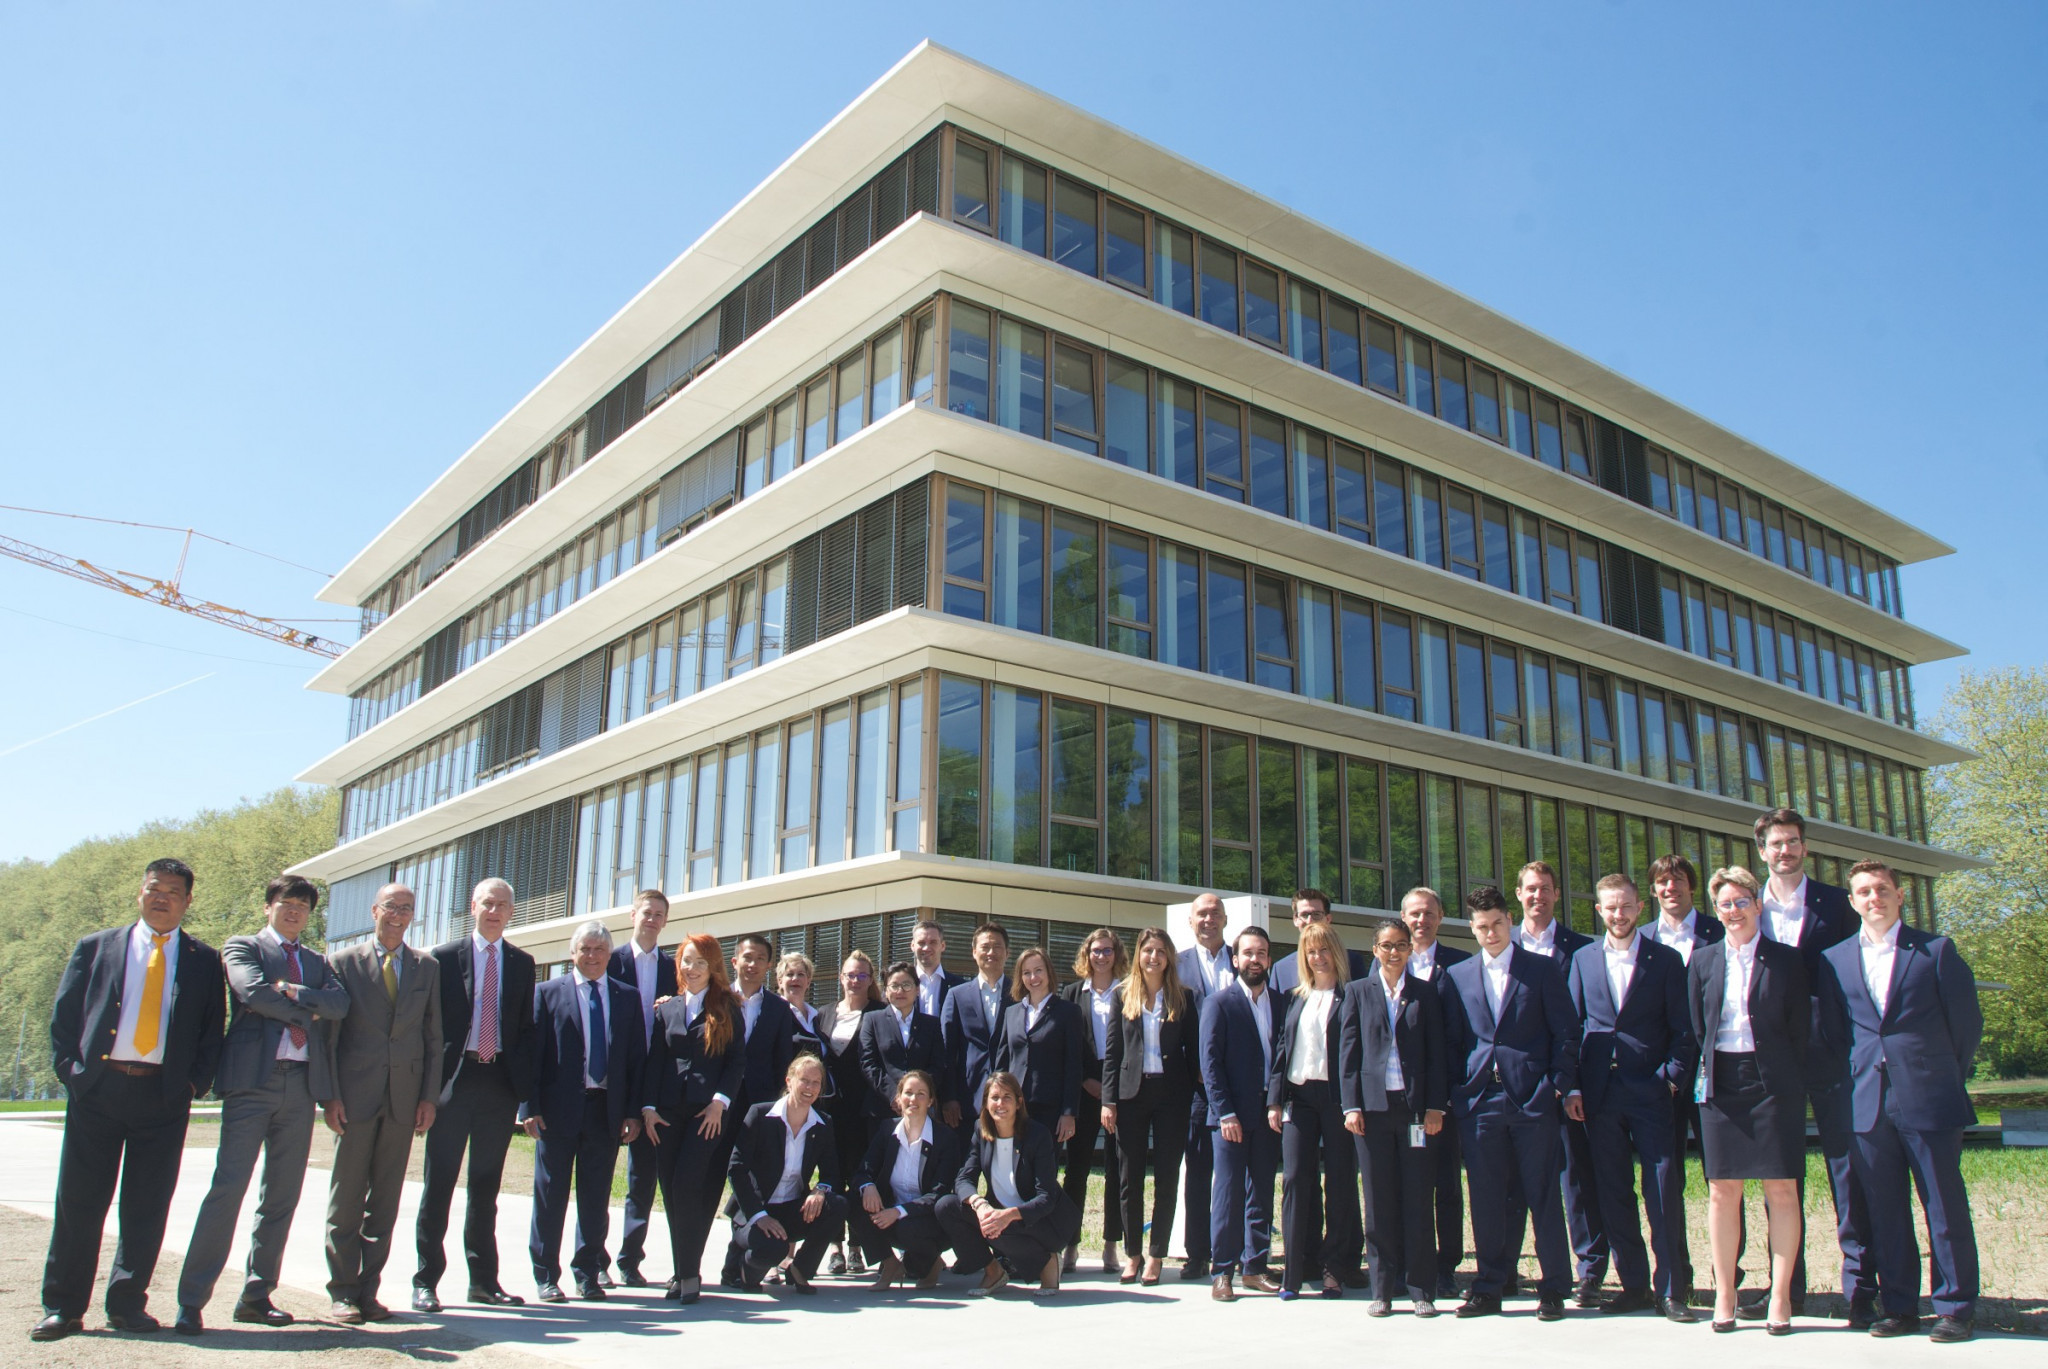 FISU officially open new headquarters in Lausanne